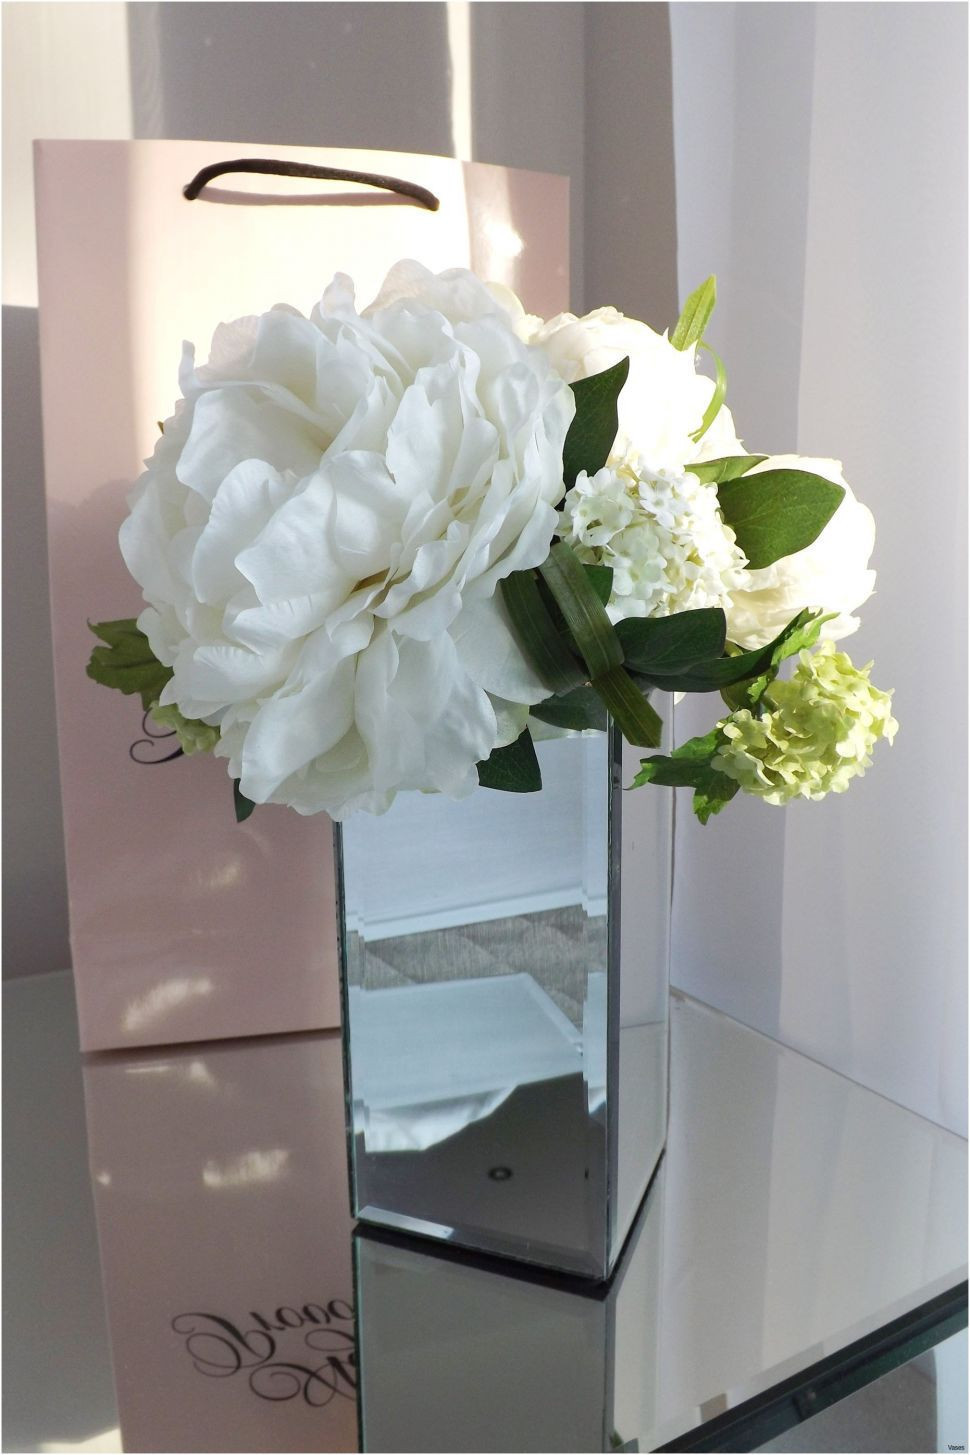 pedestal flower vase of flower arrangement line design floral arrangement inspiration with silk flowers metal vases 3h mirrored mosaic vase votivei 0d design design orchid floral arrangements